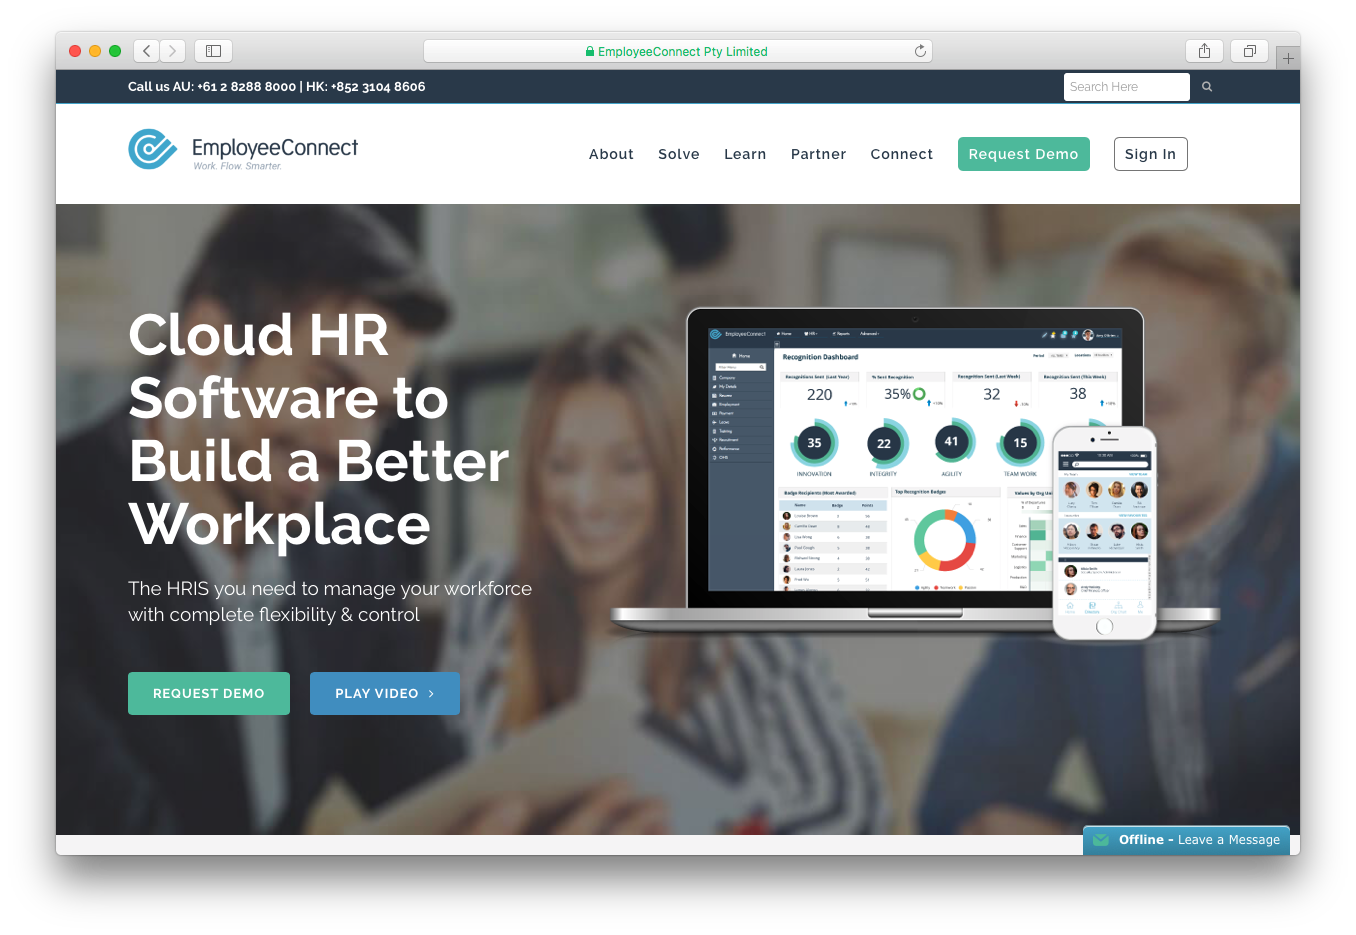 EmployeeConnect cloud HR Human Resources software build better workplace manage workforce